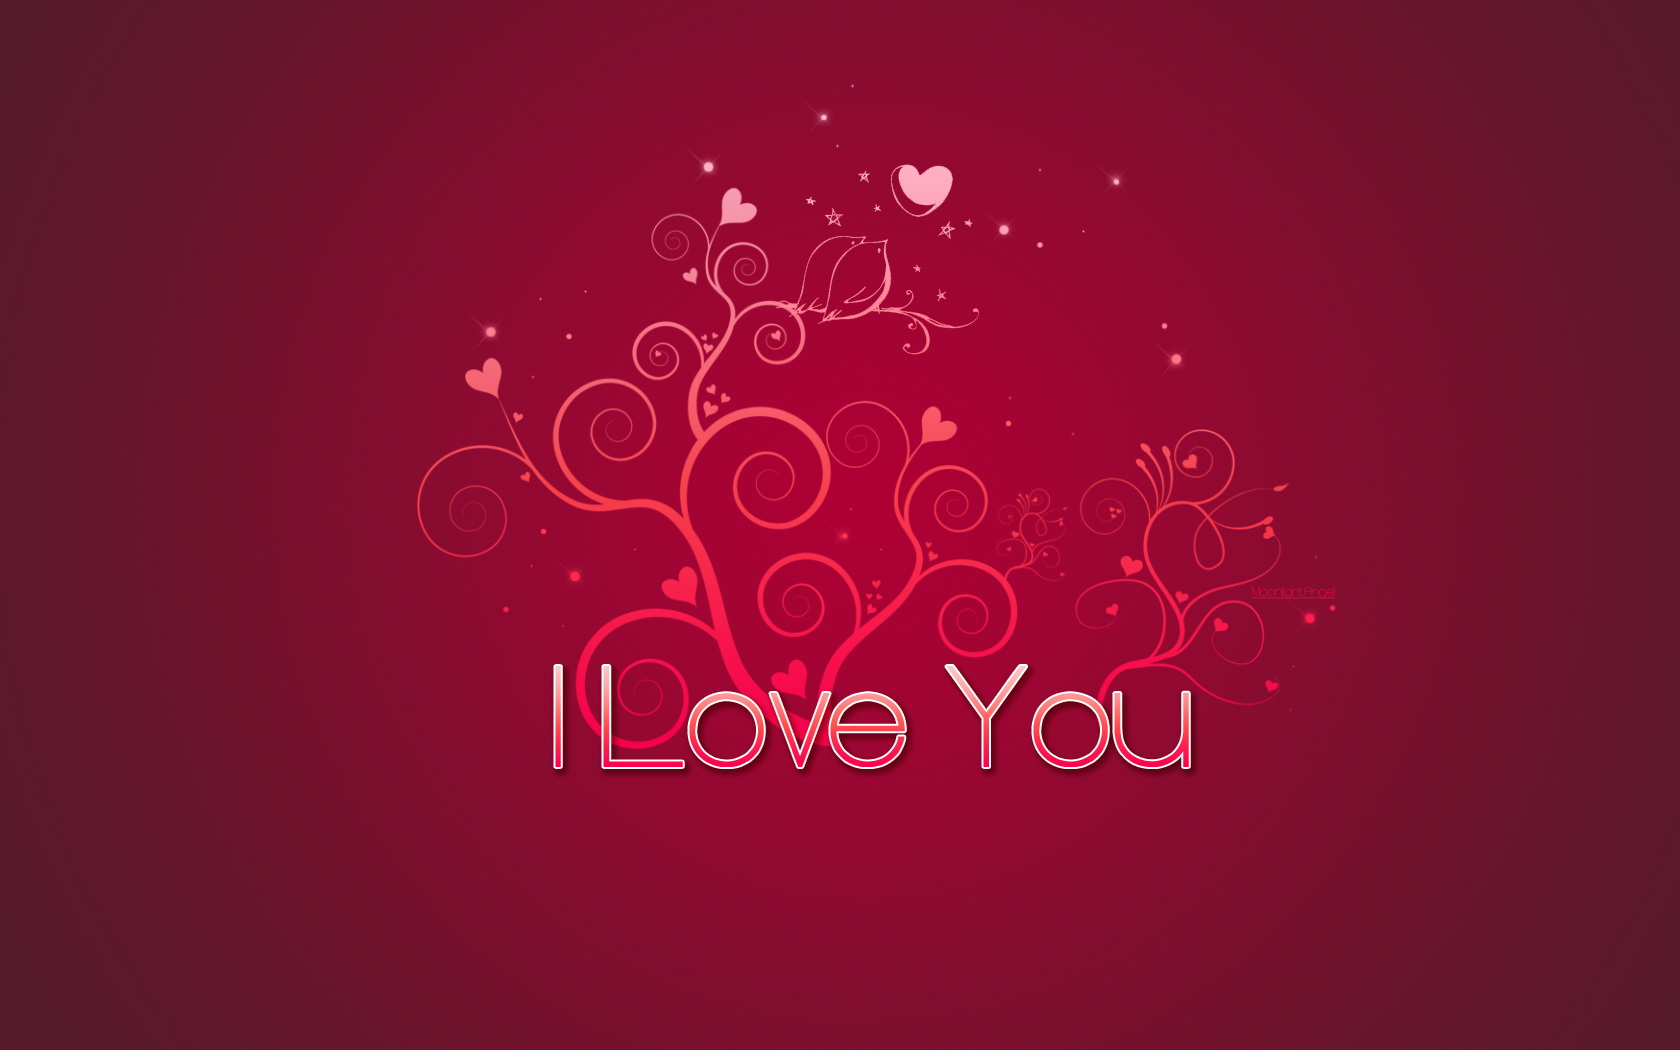 love give heart wallpapers - photo #1